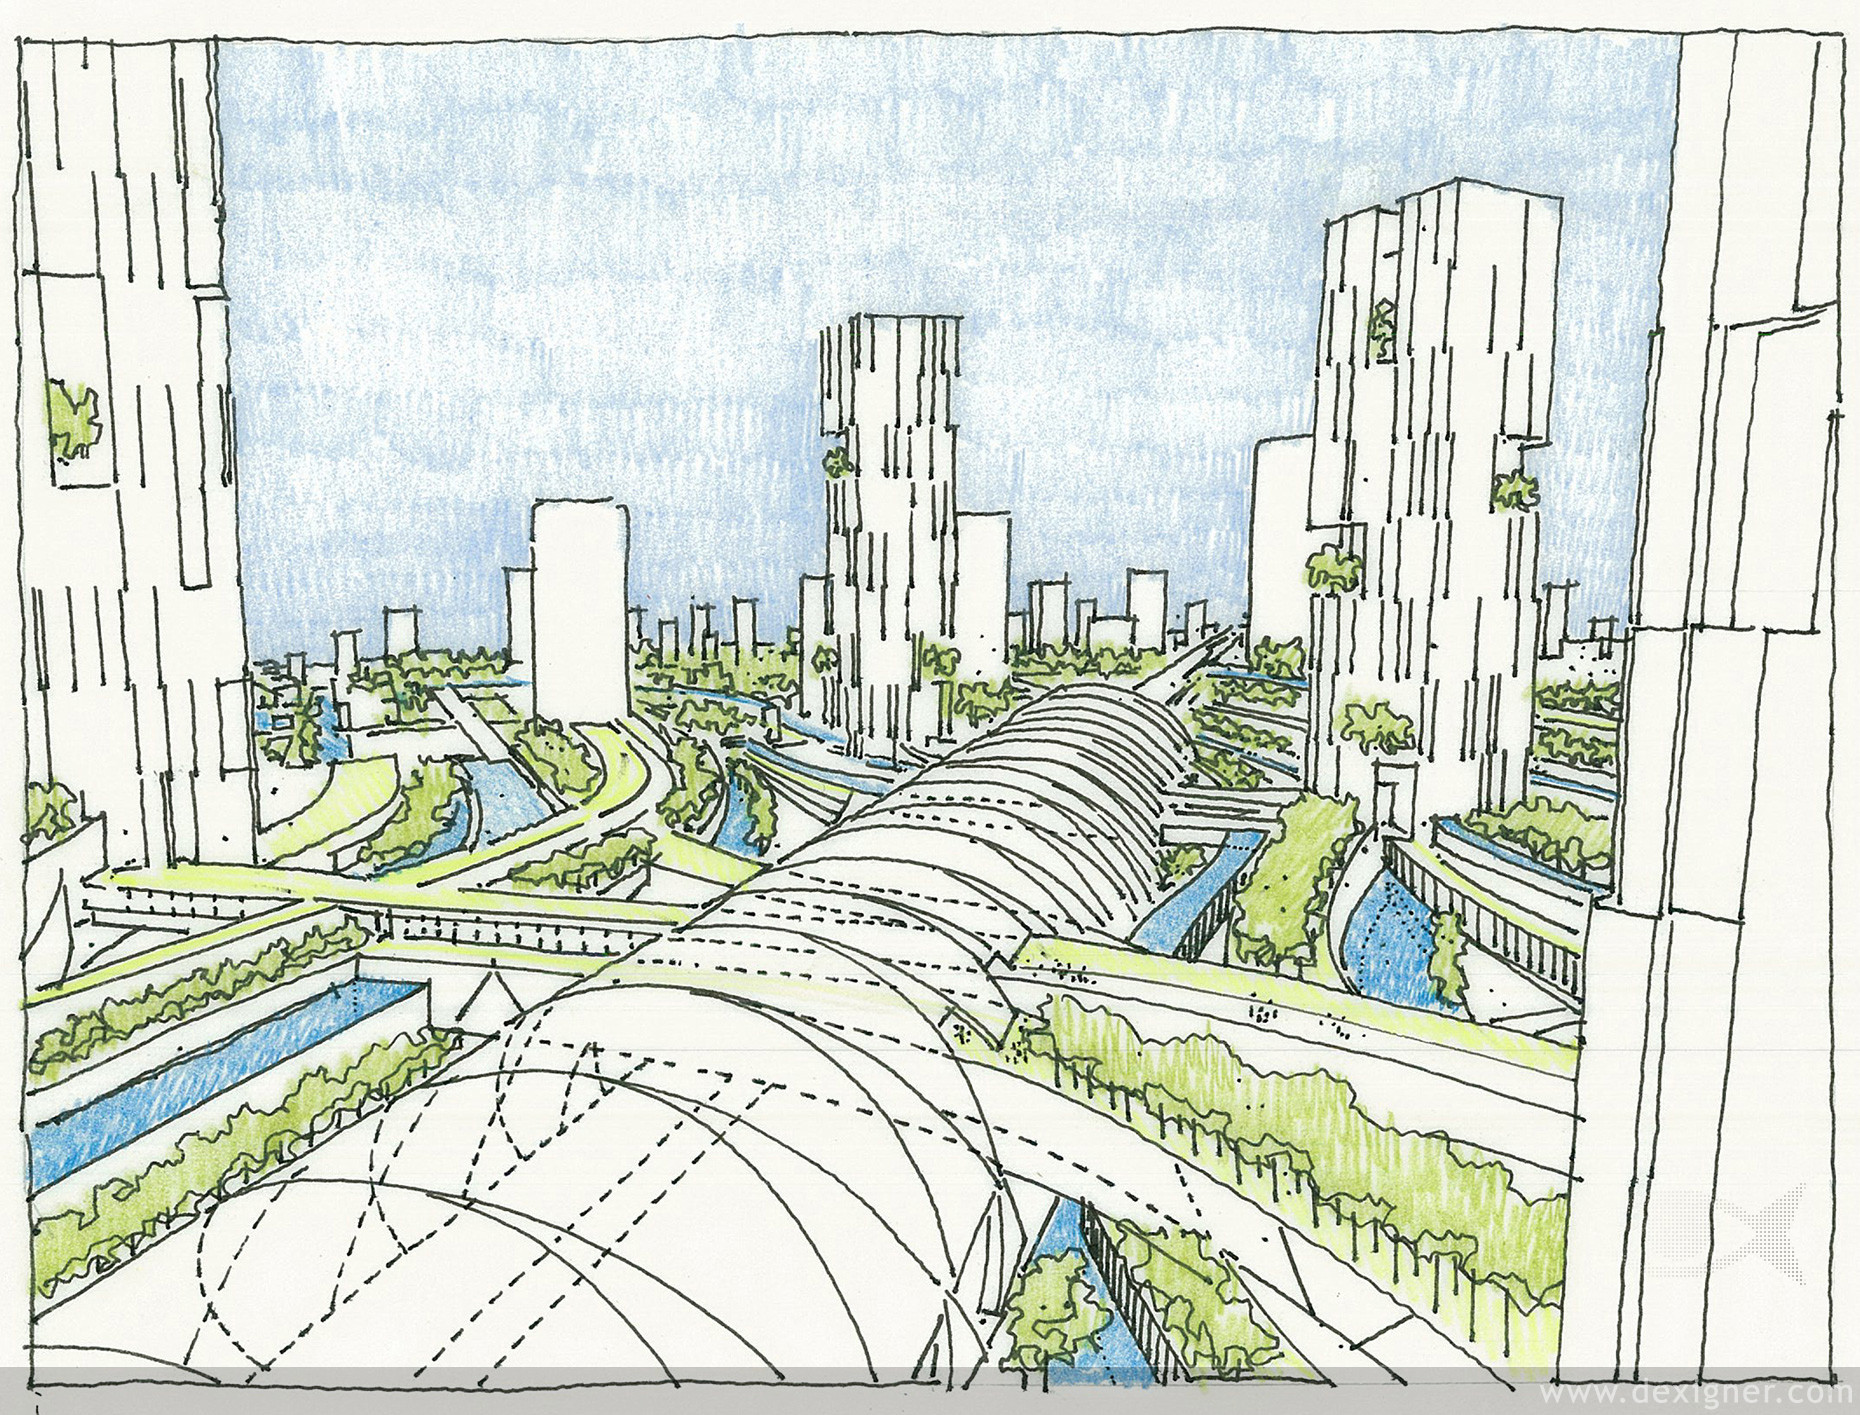 Dreaming the ideal city informed infrastructure Green plans